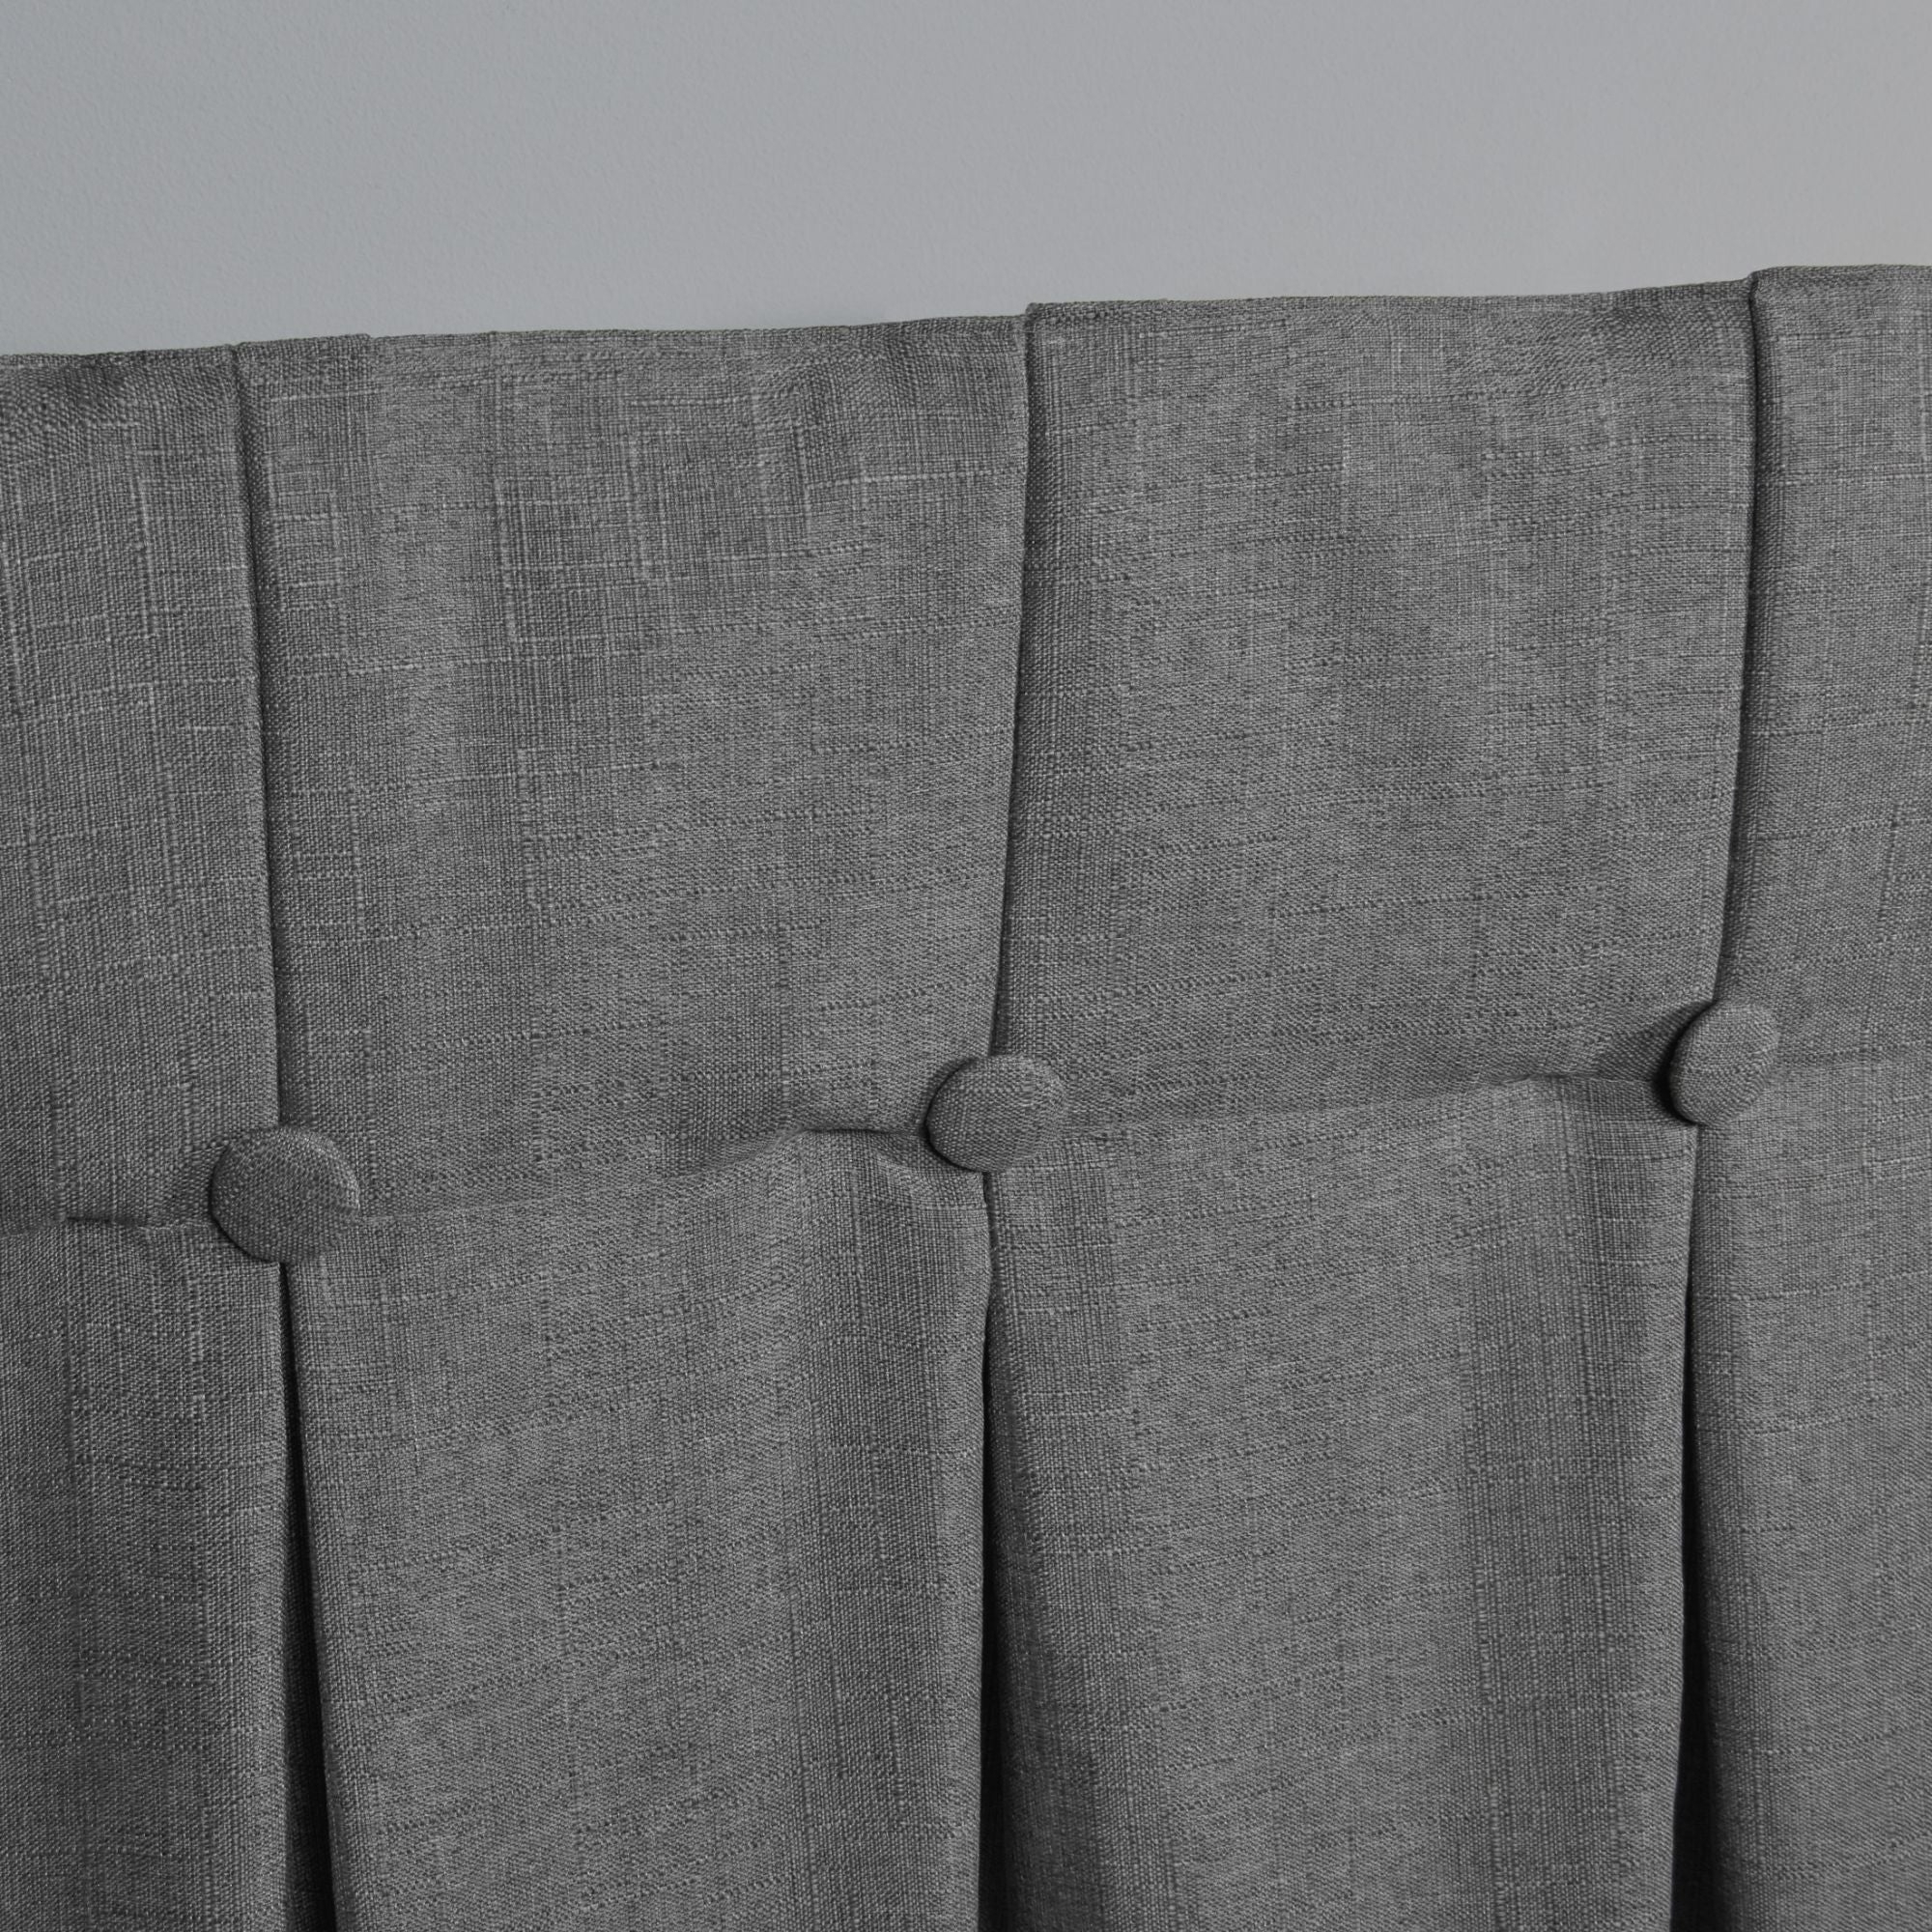 Widely Used Details About Copper Grove Popovo Linen Button Top Window Curtain Panel In Copper Grove Fulgence Faux Silk Grommet Top Panel Curtains (View 10 of 20)